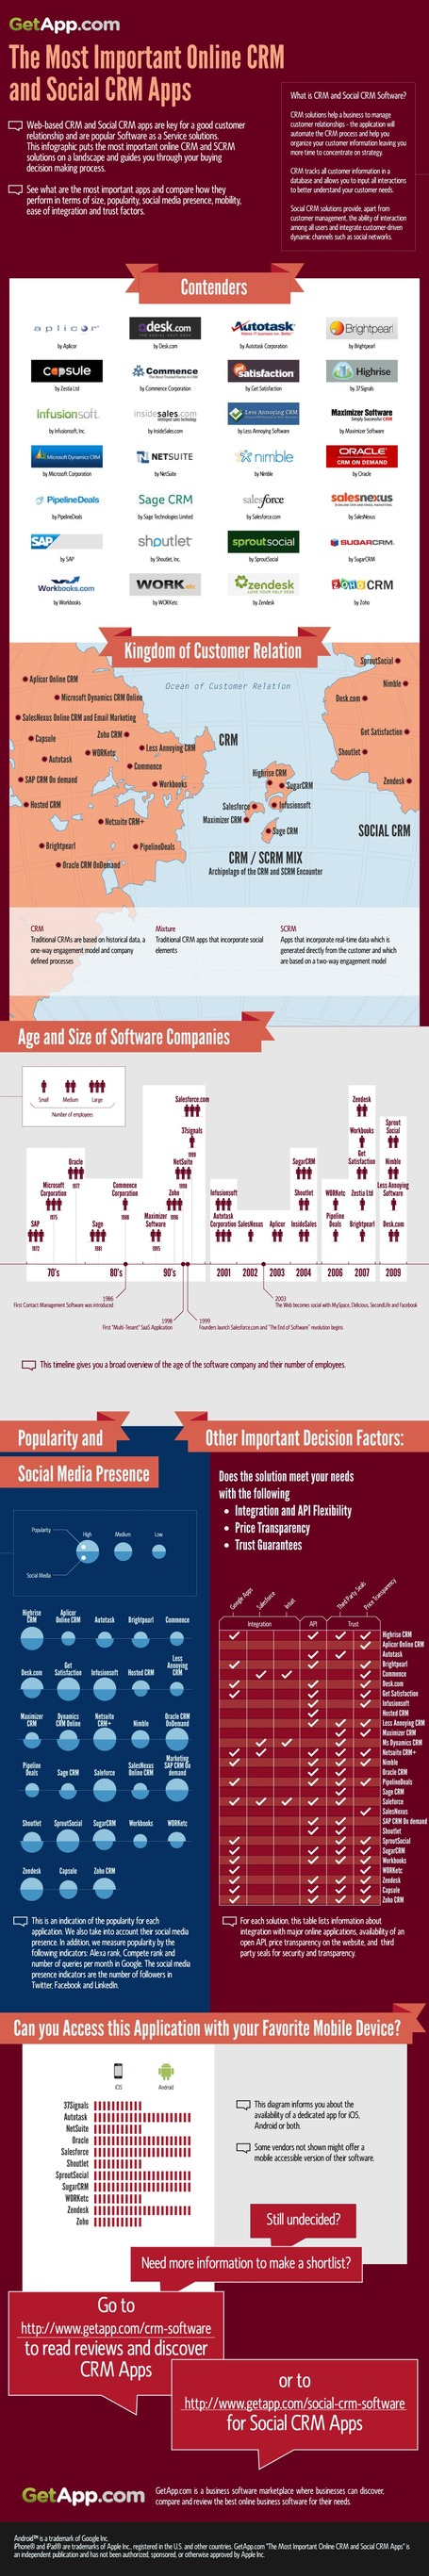 INFOGRAPHIC: Top 50+ Best List of Online CRM & Social CRM Apps | All Infographics | Cloud Central | Scoop.it